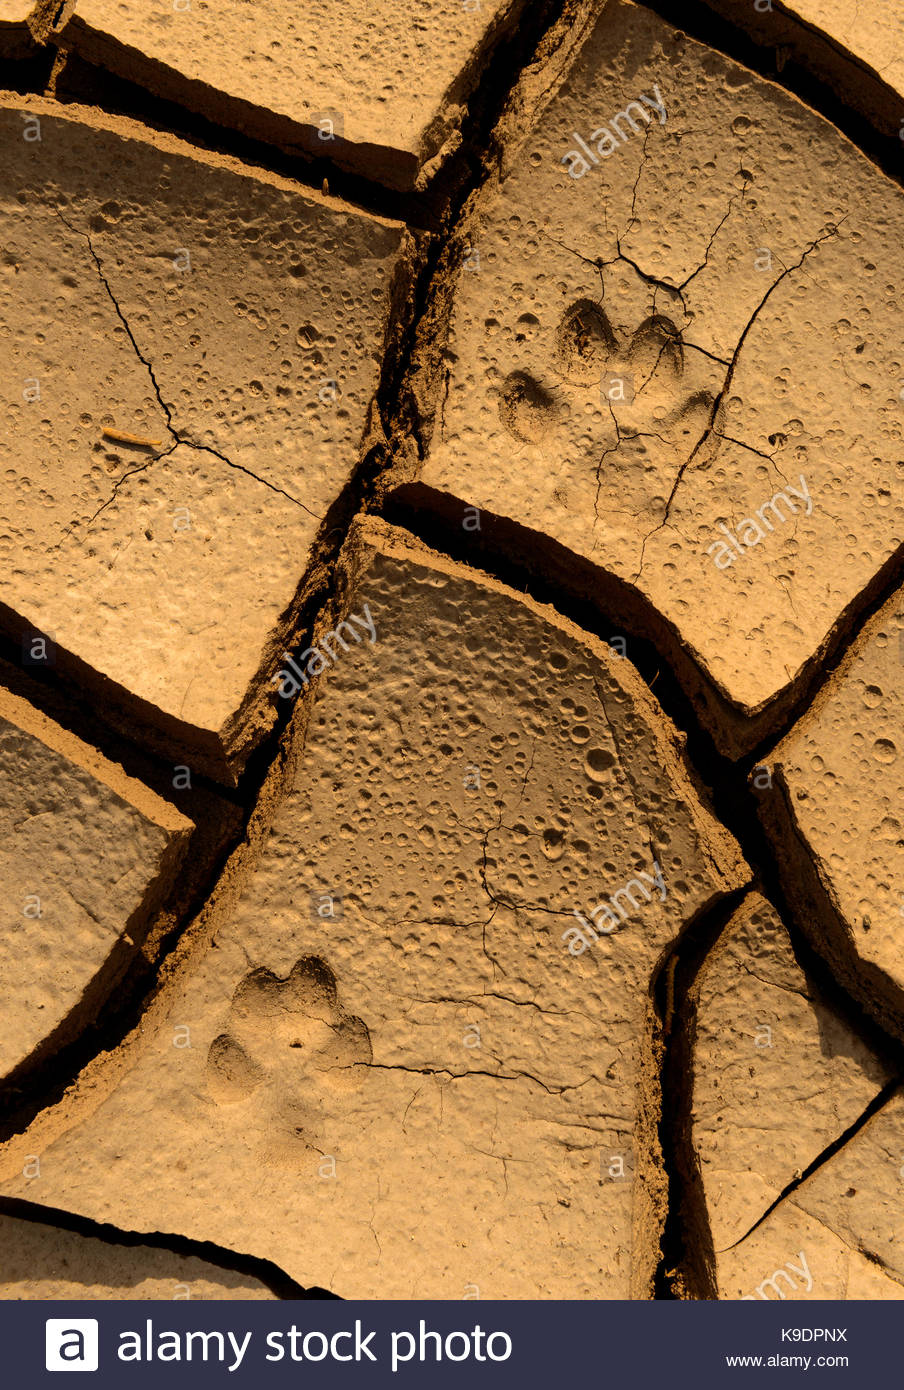 Bobcat Tracks in Creek Bed at Sunrise, BLM Lands, White Pine County, Nevada - Stock Image